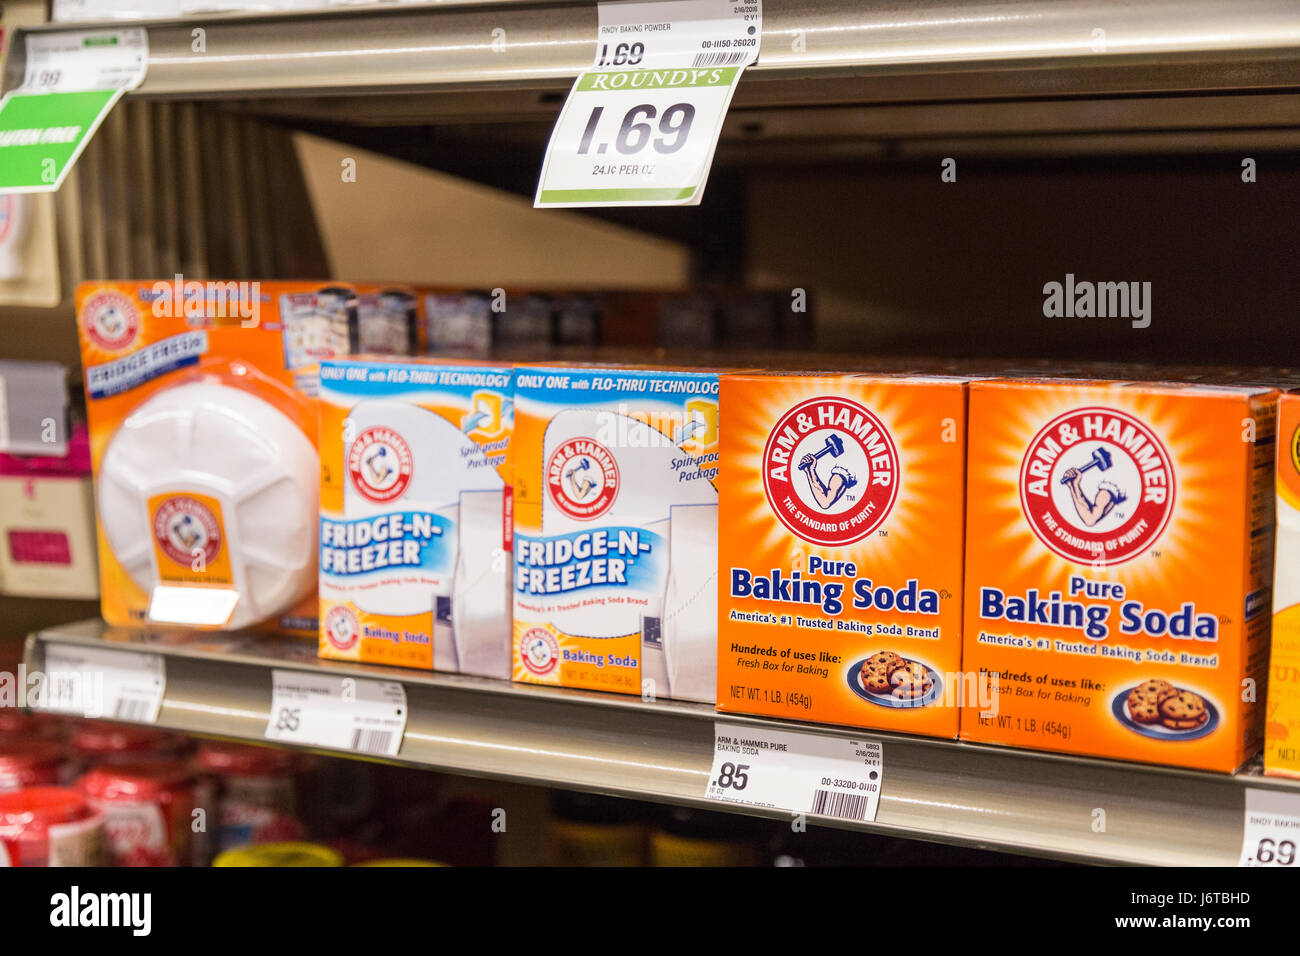 packages of Huggies brand diapers on a shelf of a grocery store - Stock Image